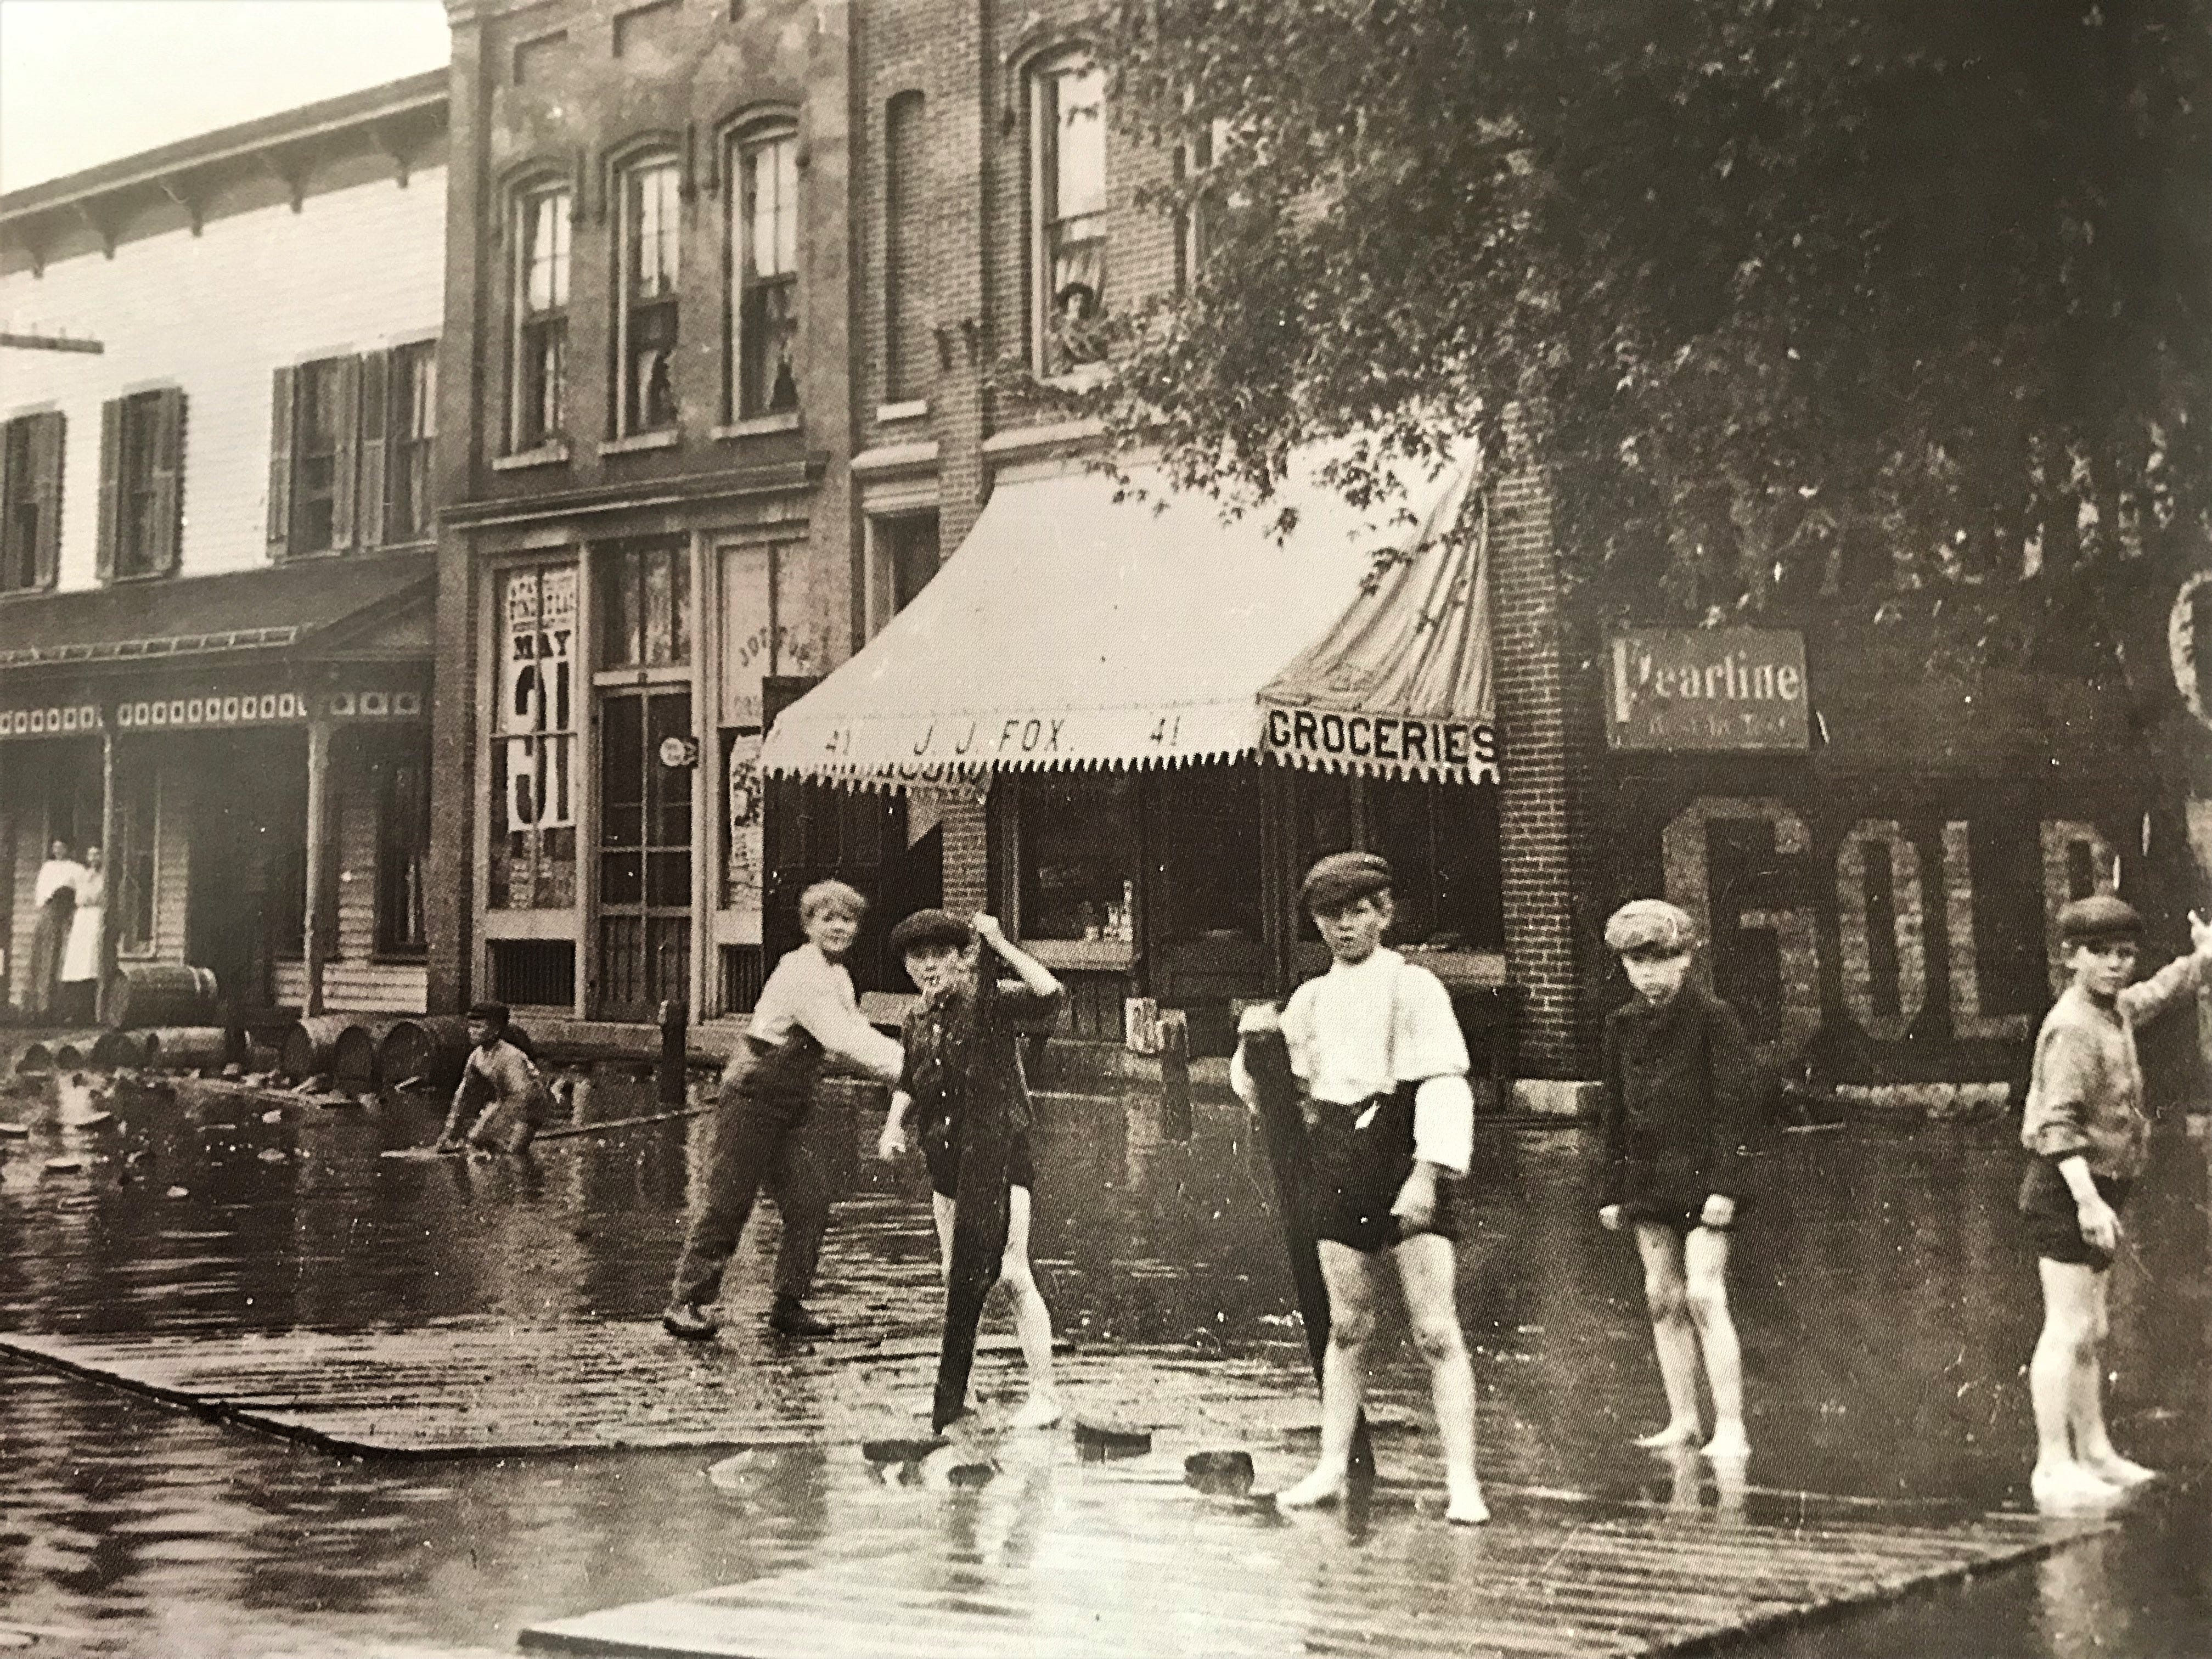 Children traveled the streets of Fond du Lac on sections of floating sidewalk following the flood of June 6, 1905. The dam at Eldorado - on the west branch of the Fond du Lac River - burst, causing flood waters to rush into the city. The photo was taken on Fourth Street, between Main and Marr streets.